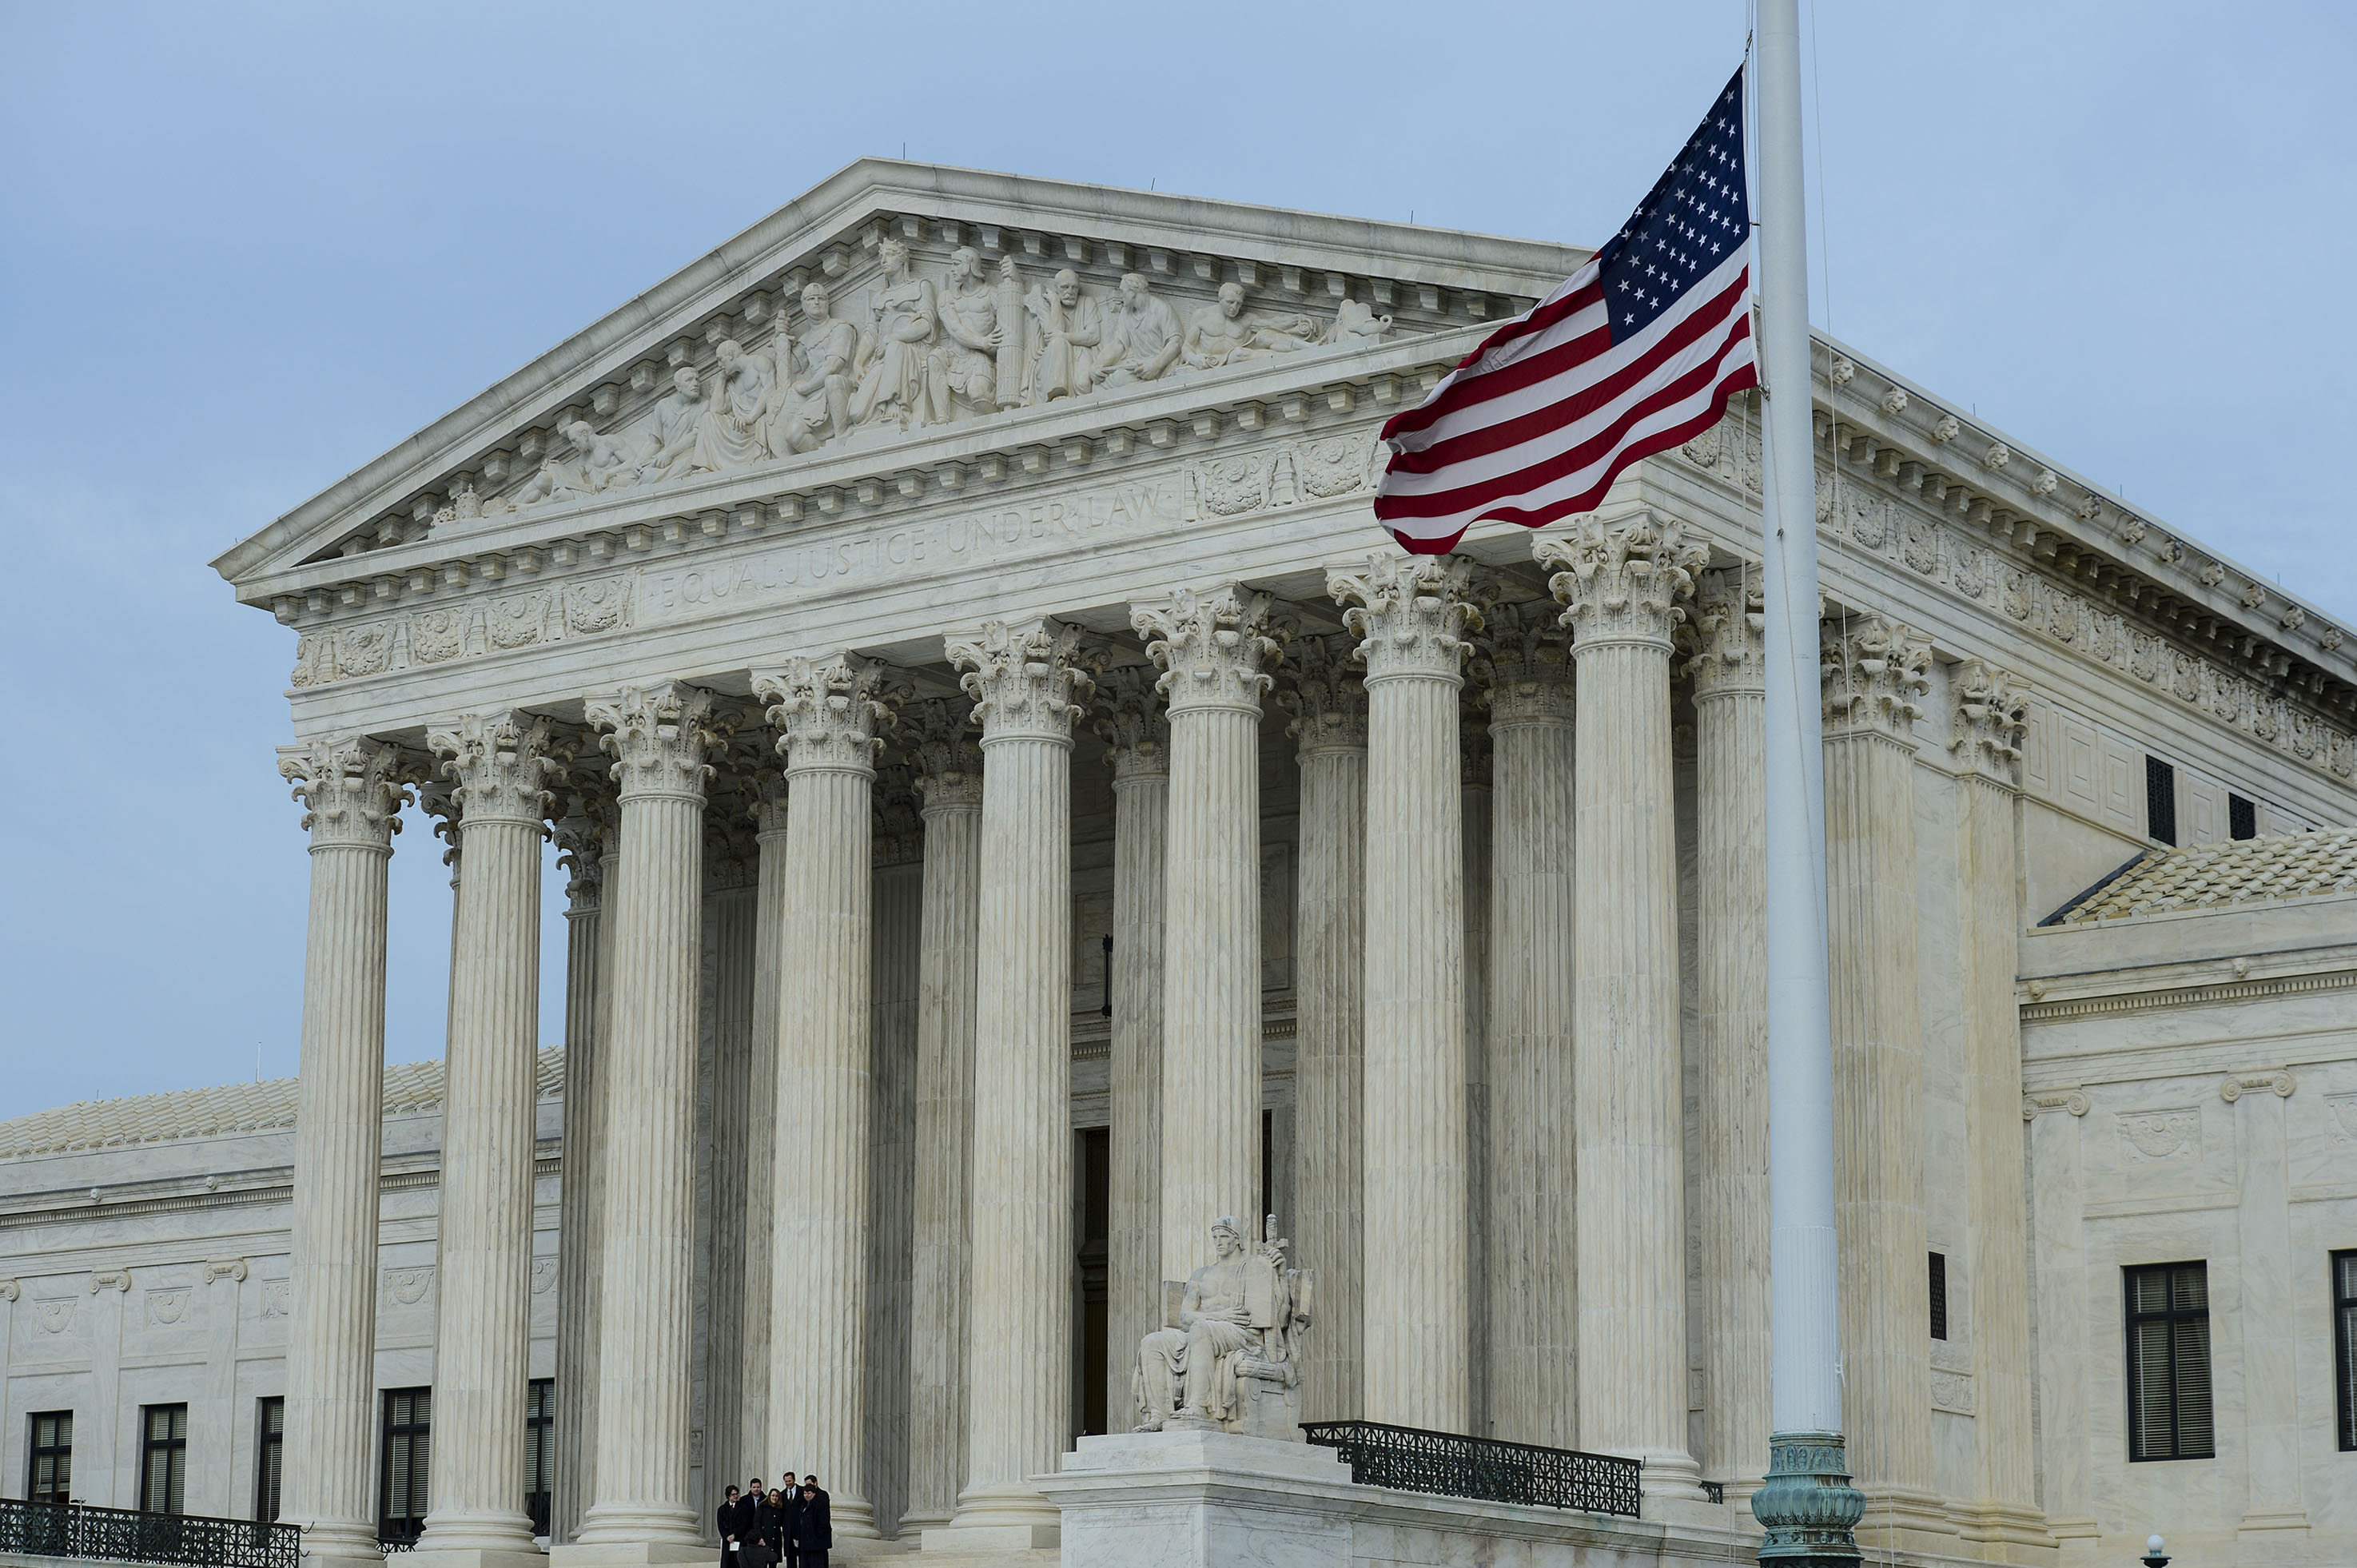 Justice Antonin Scalia's Body Lies in Repose At U.S. Supreme Court